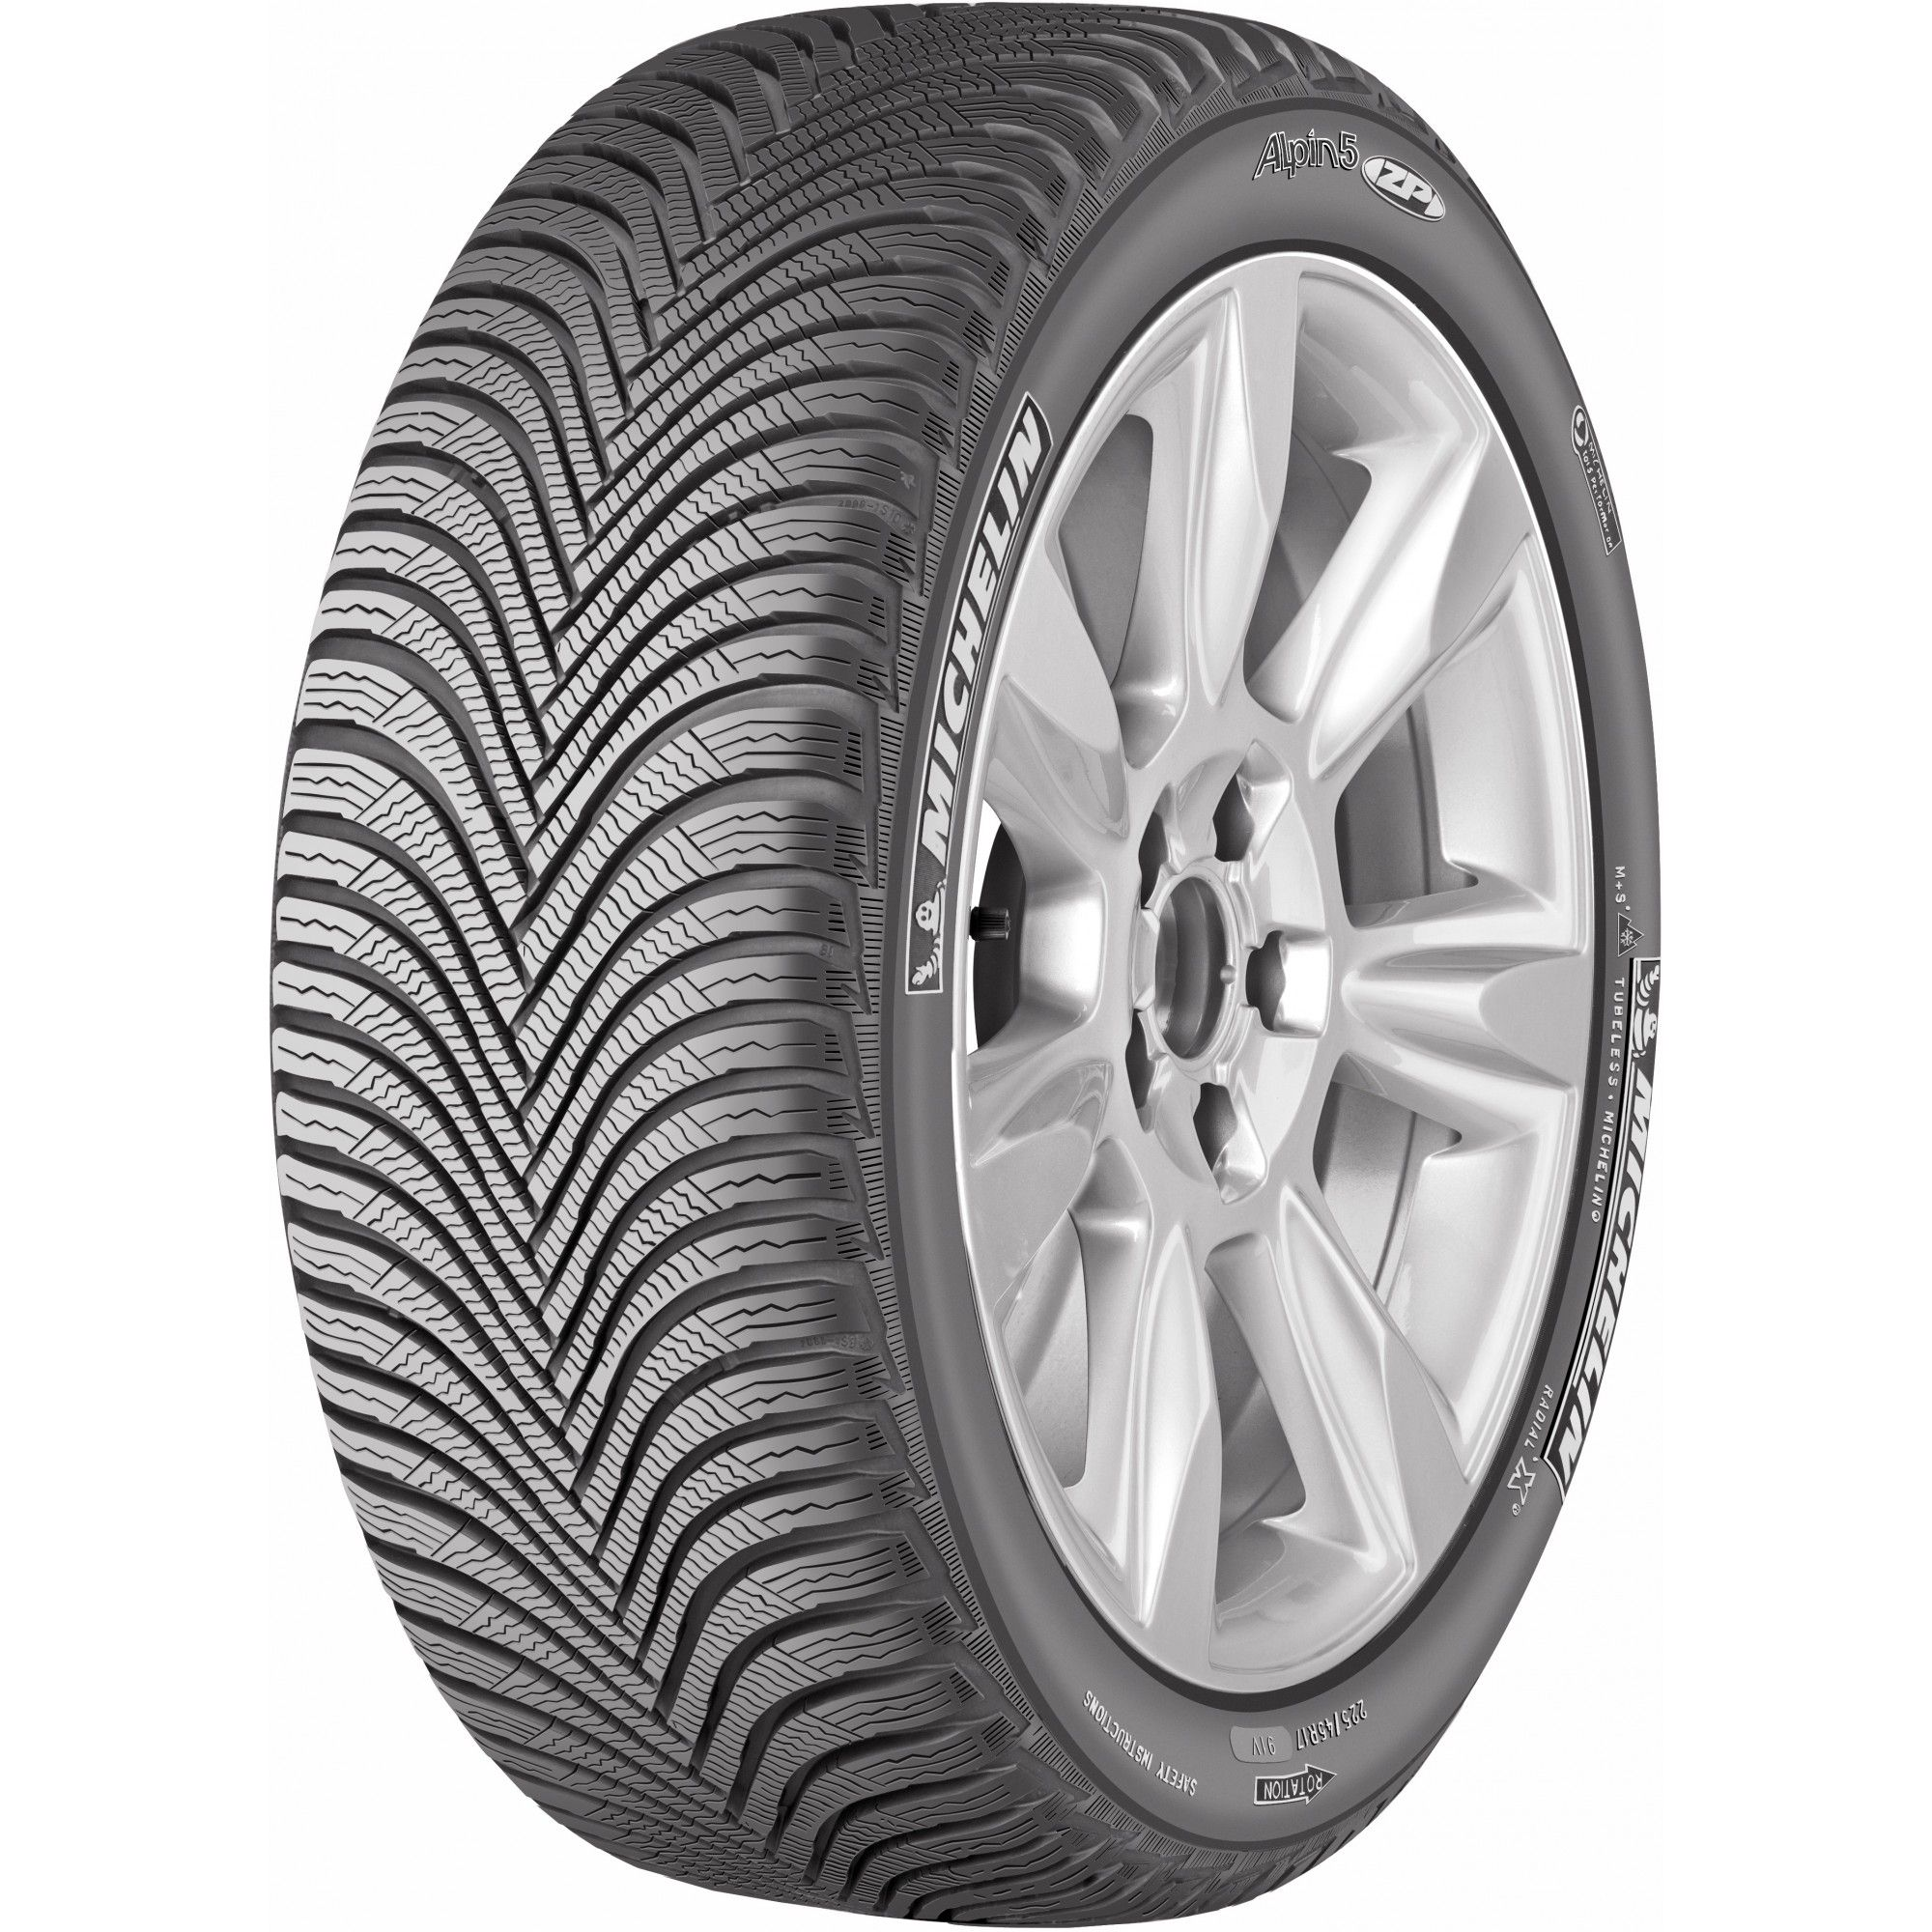 Зимняя шина Michelin Alpin 5 205/60 R15 91H